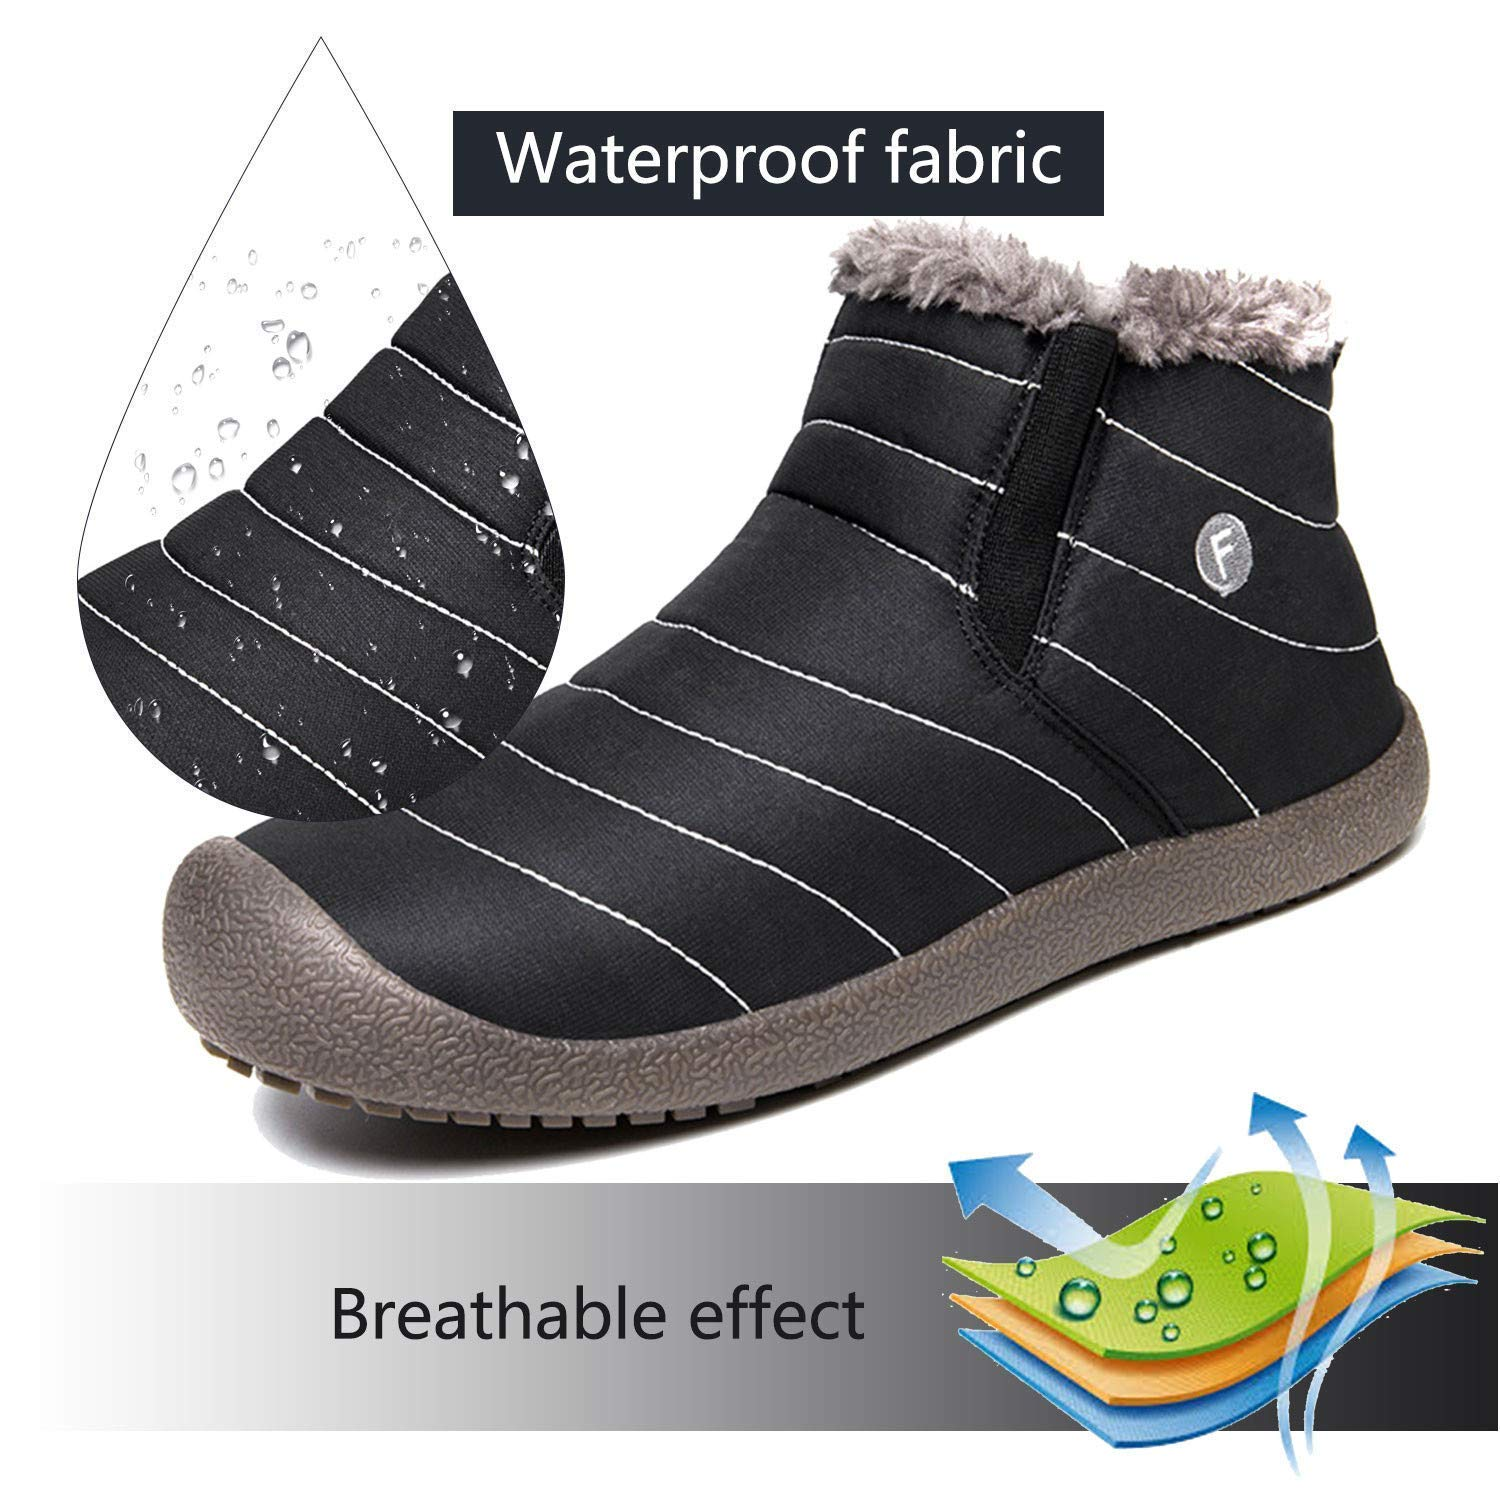 Shoes Men's Boots Weweya New Men Winter Shoes Unisex Waterproof Snow Boots Plush Inside Keep Warm Ankle Boots Couple Sneakers Ski Boots Size 48 Always Buy Good